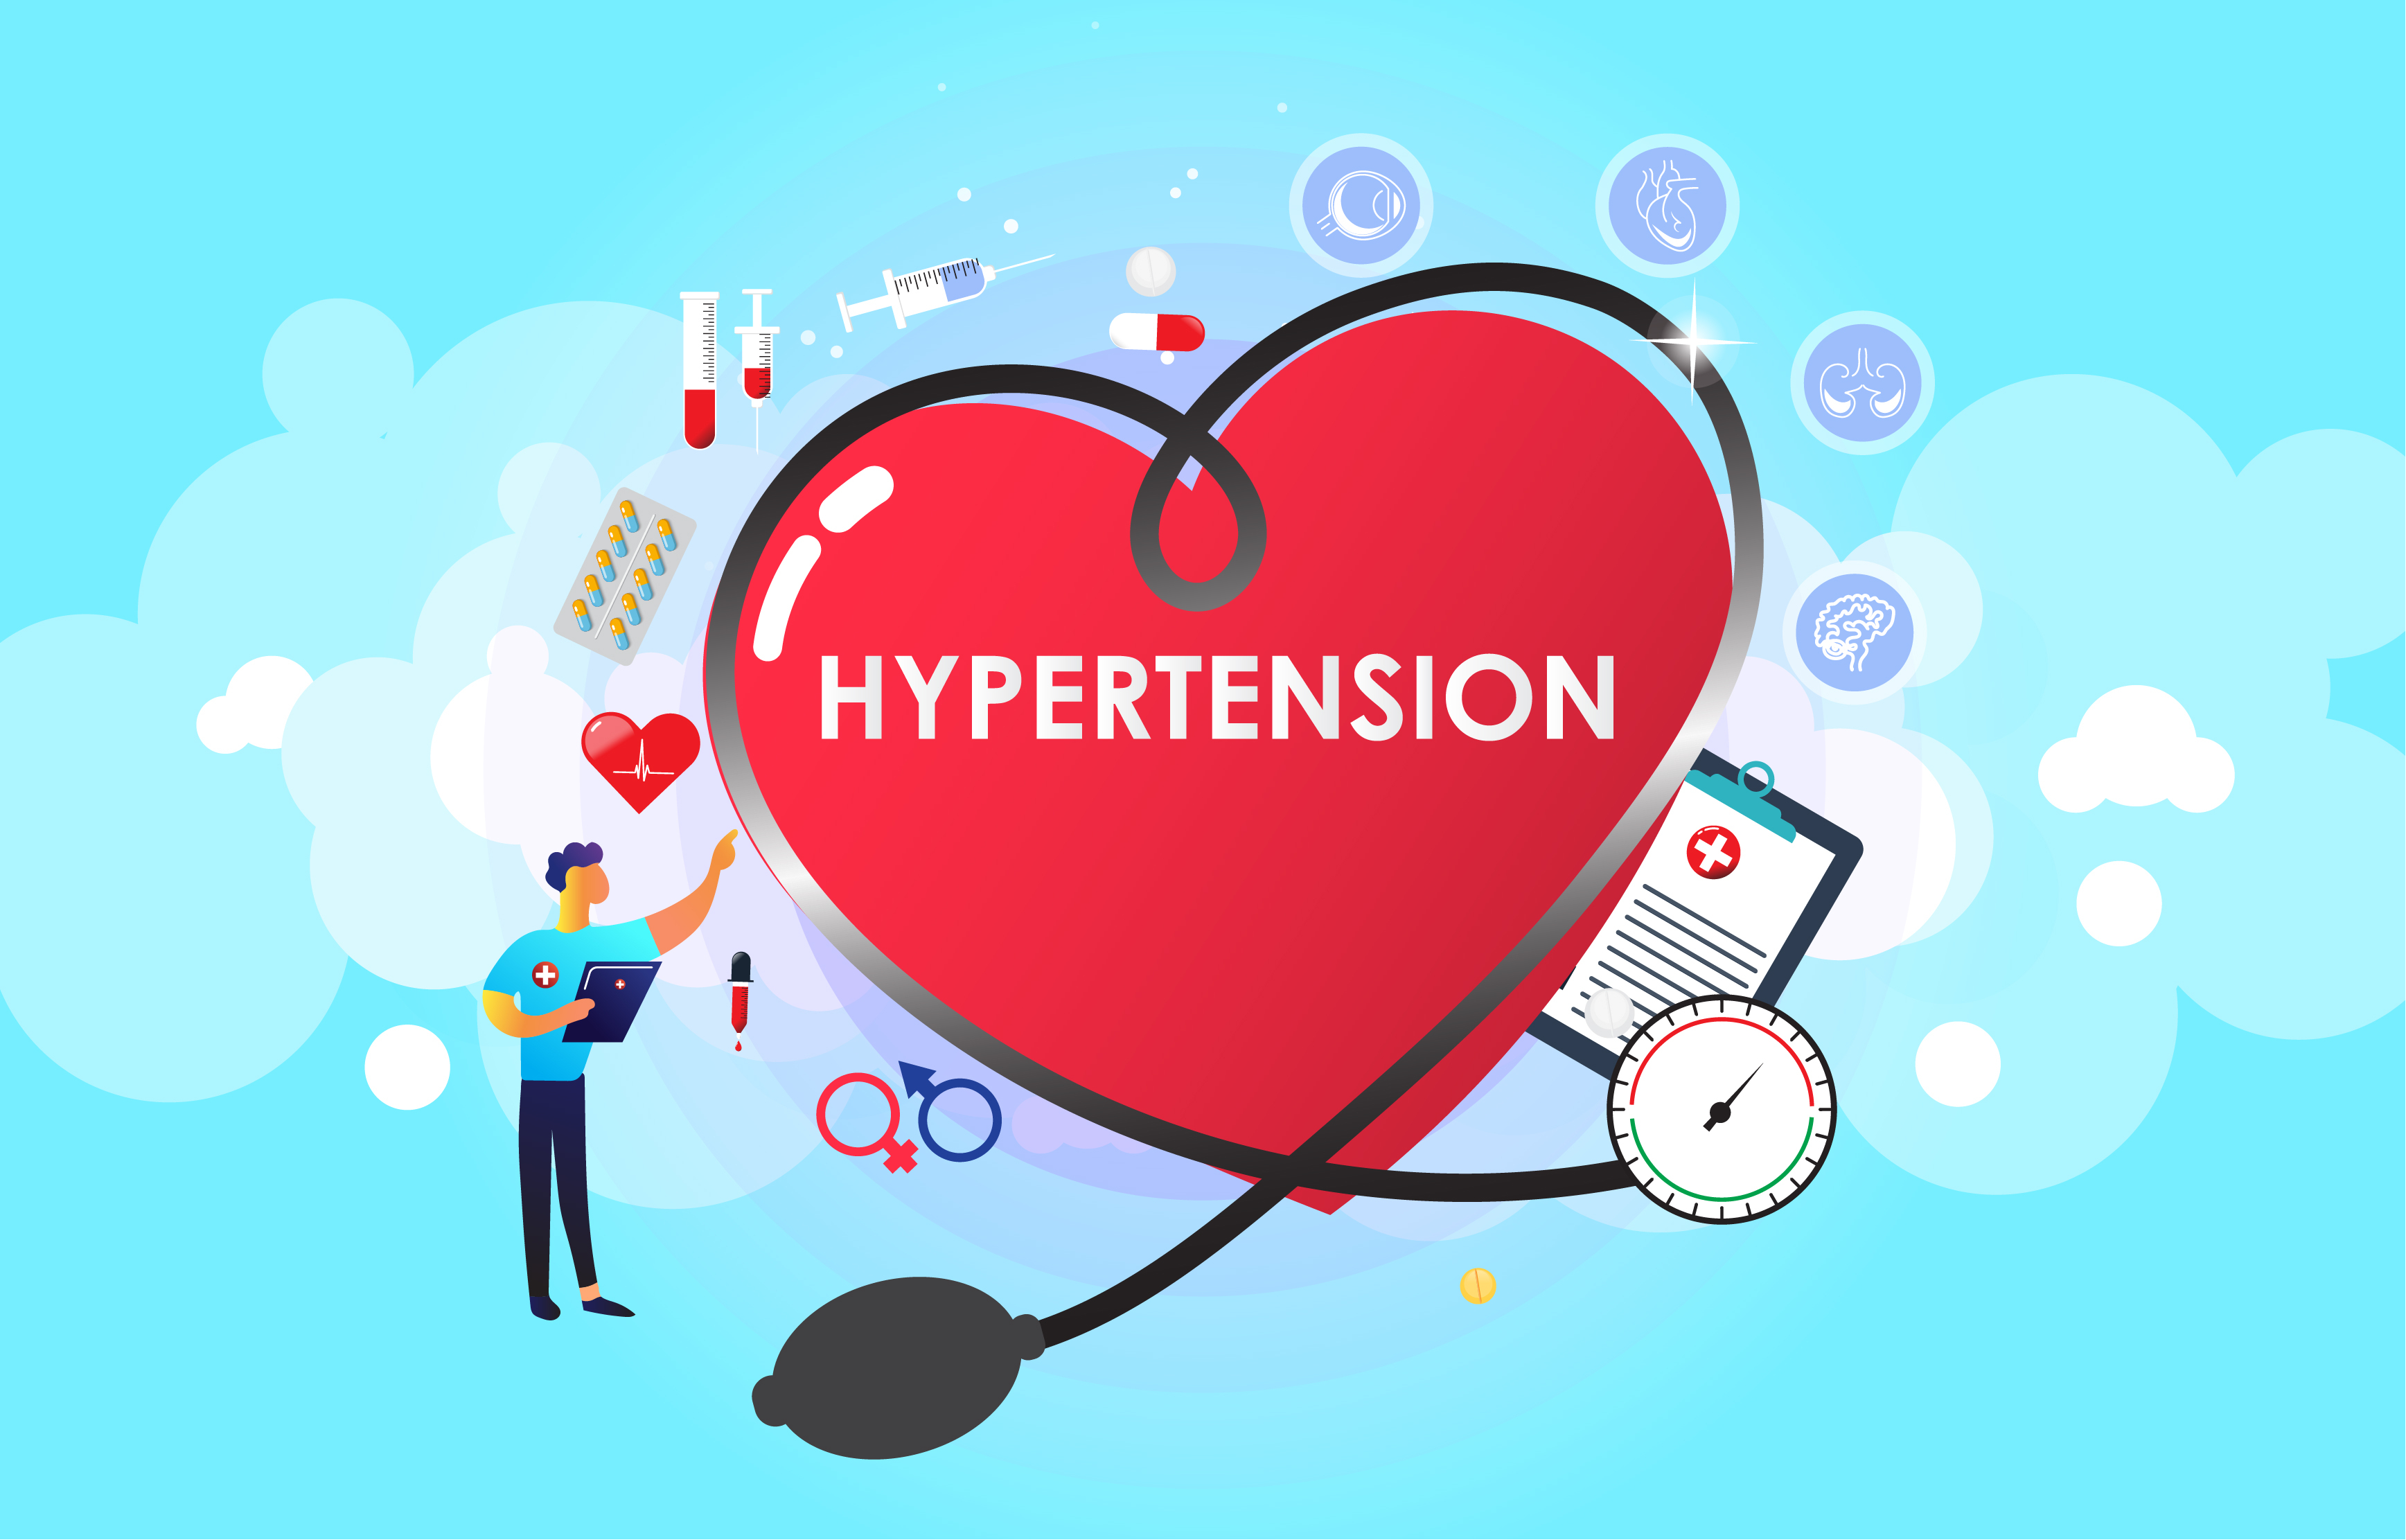 Serious complexions that are caused by Hypertension